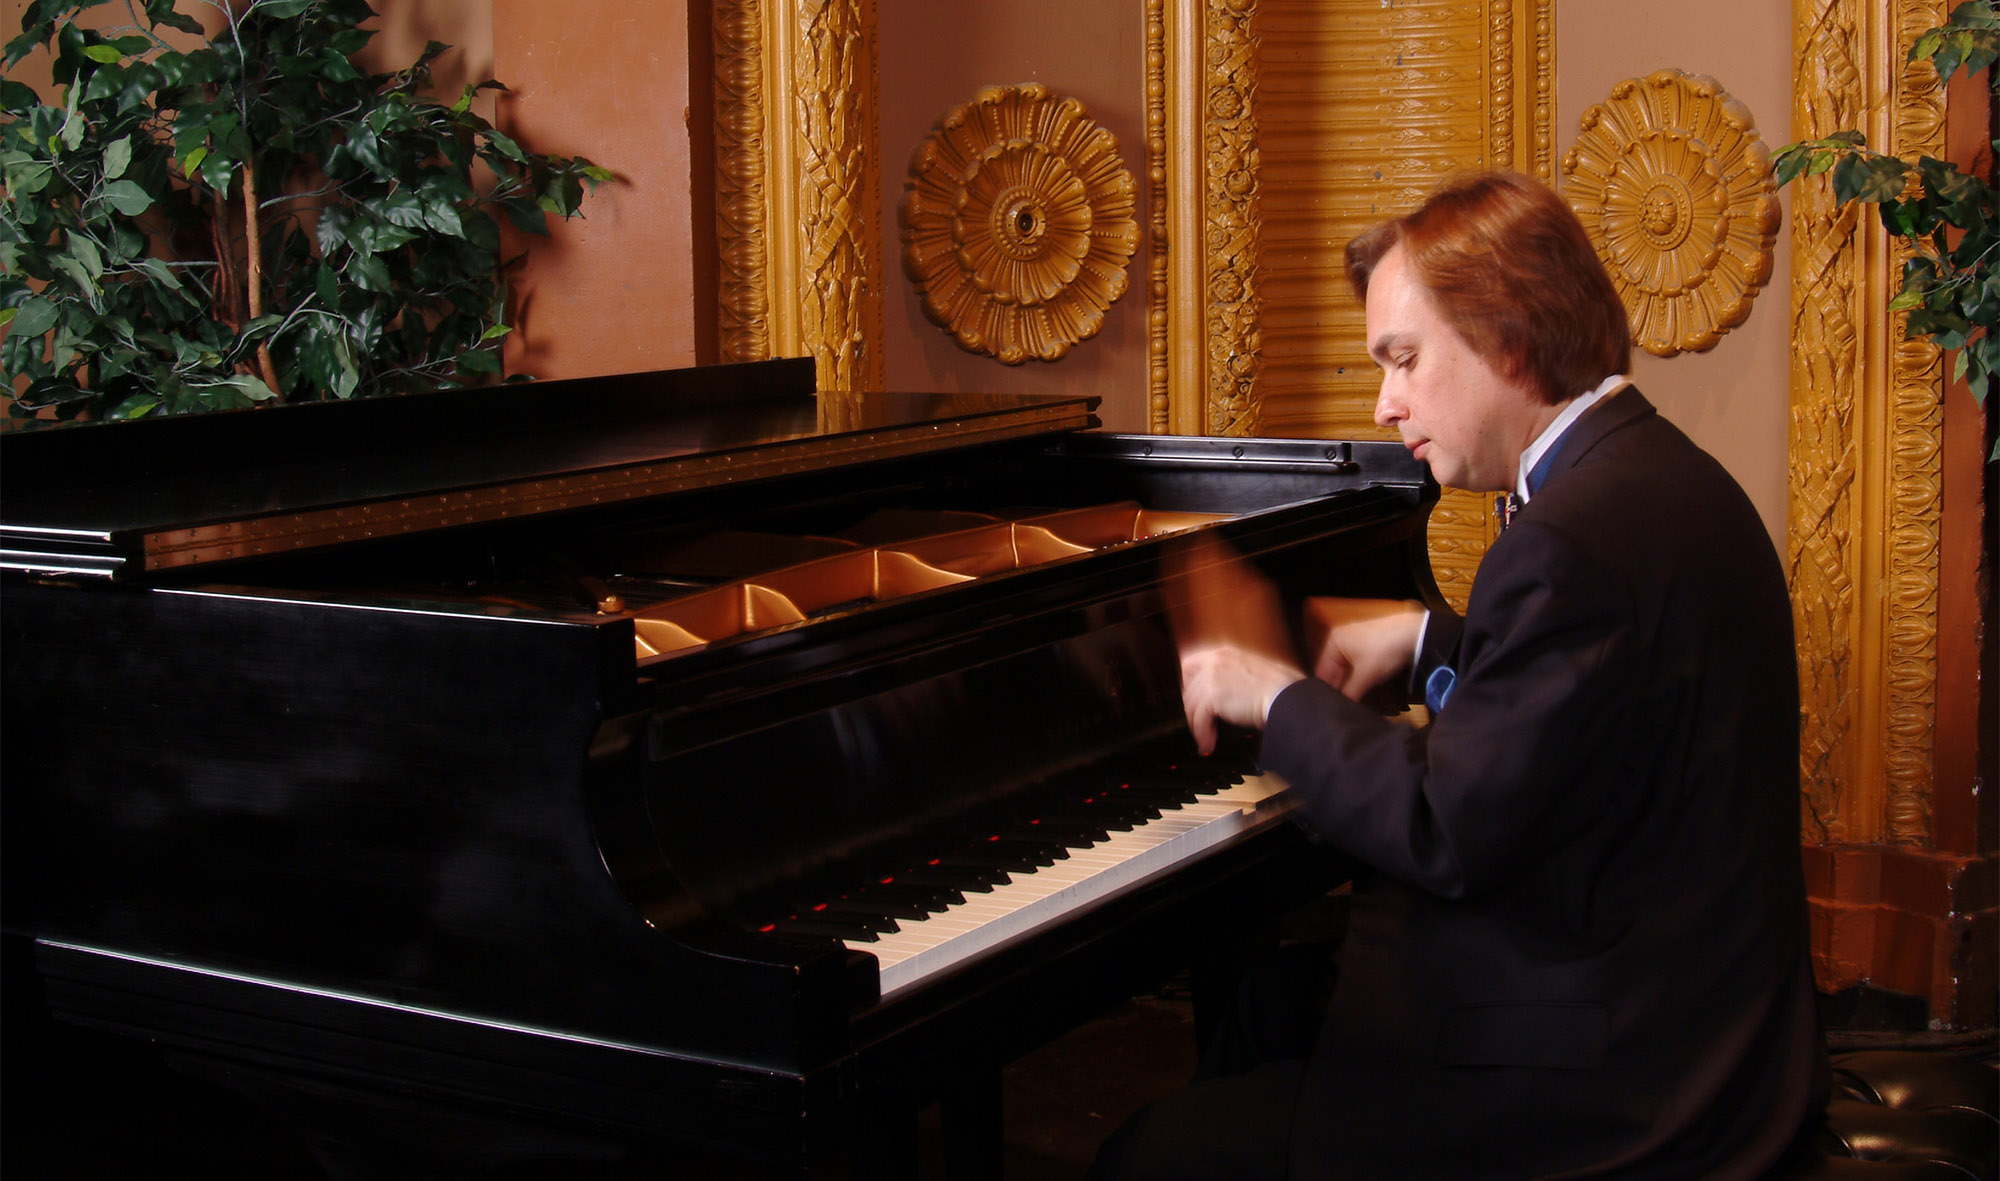 "The UCO College of Fine Arts and Design will present its annual fundraiser ""Toast to the Maestro"" at 6 p.m. Nov. 25 at the UCO Jazz Lab featuring the talents of world-renowned pianist Valery Kuleshov."